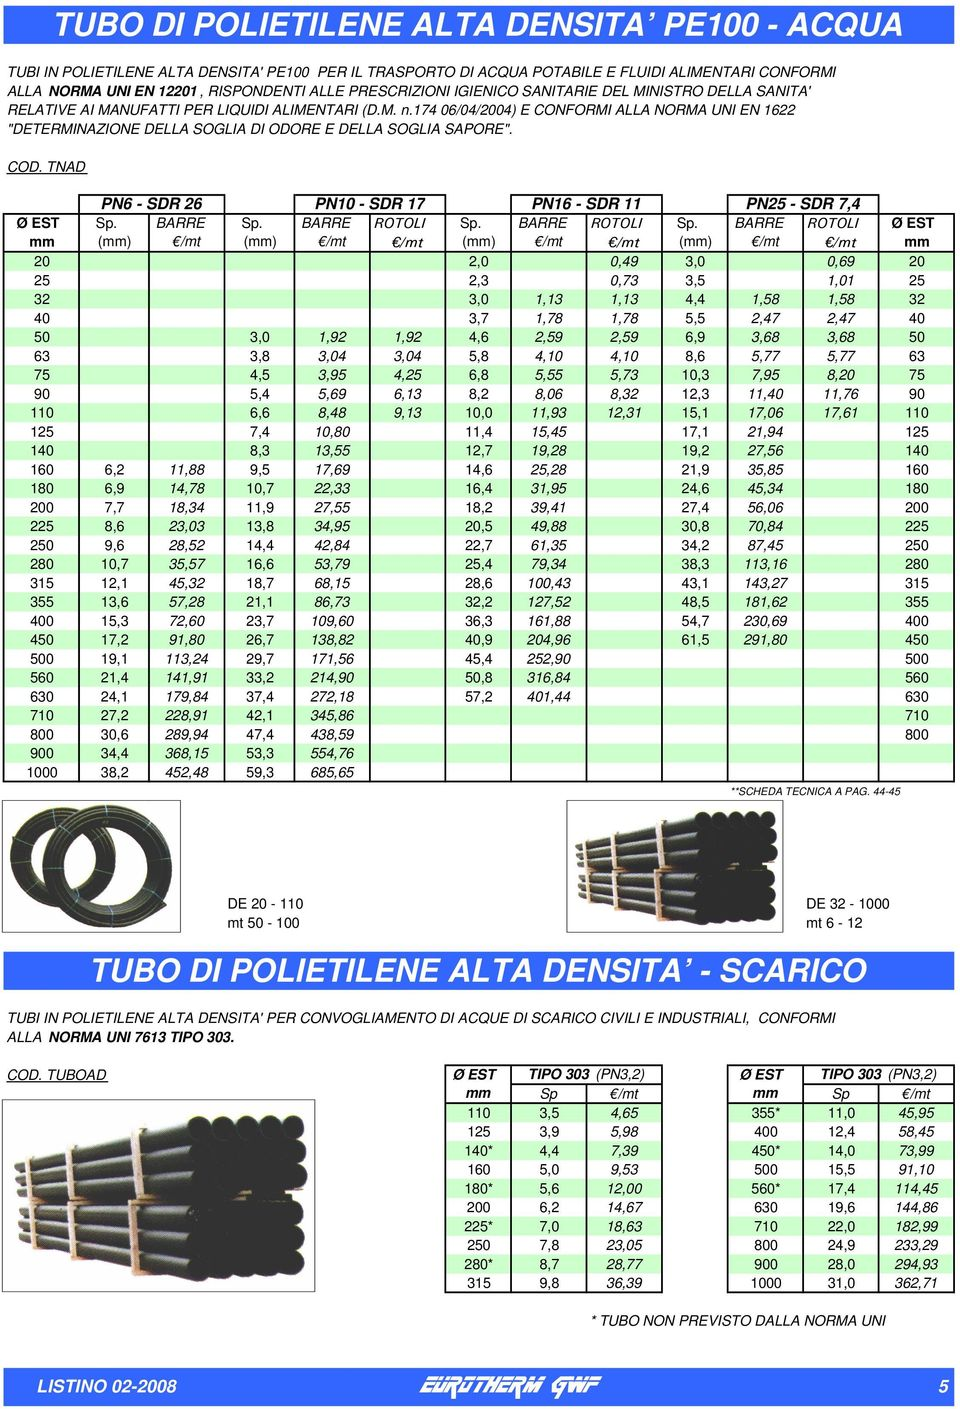 TNAD Ø EST TUBO DI POLIETILENE ALTA DENSITA PE100 - ACQUA PN6 - SDR 26 Sp. BARRE (mm) /mt Sp. (mm) PN10 - SDR 17 ROTOLI BARRE /mt Sp. (mm) PN16 - SDR 11 PN25 - SDR 7,4 BARRE ROTOLI Sp.